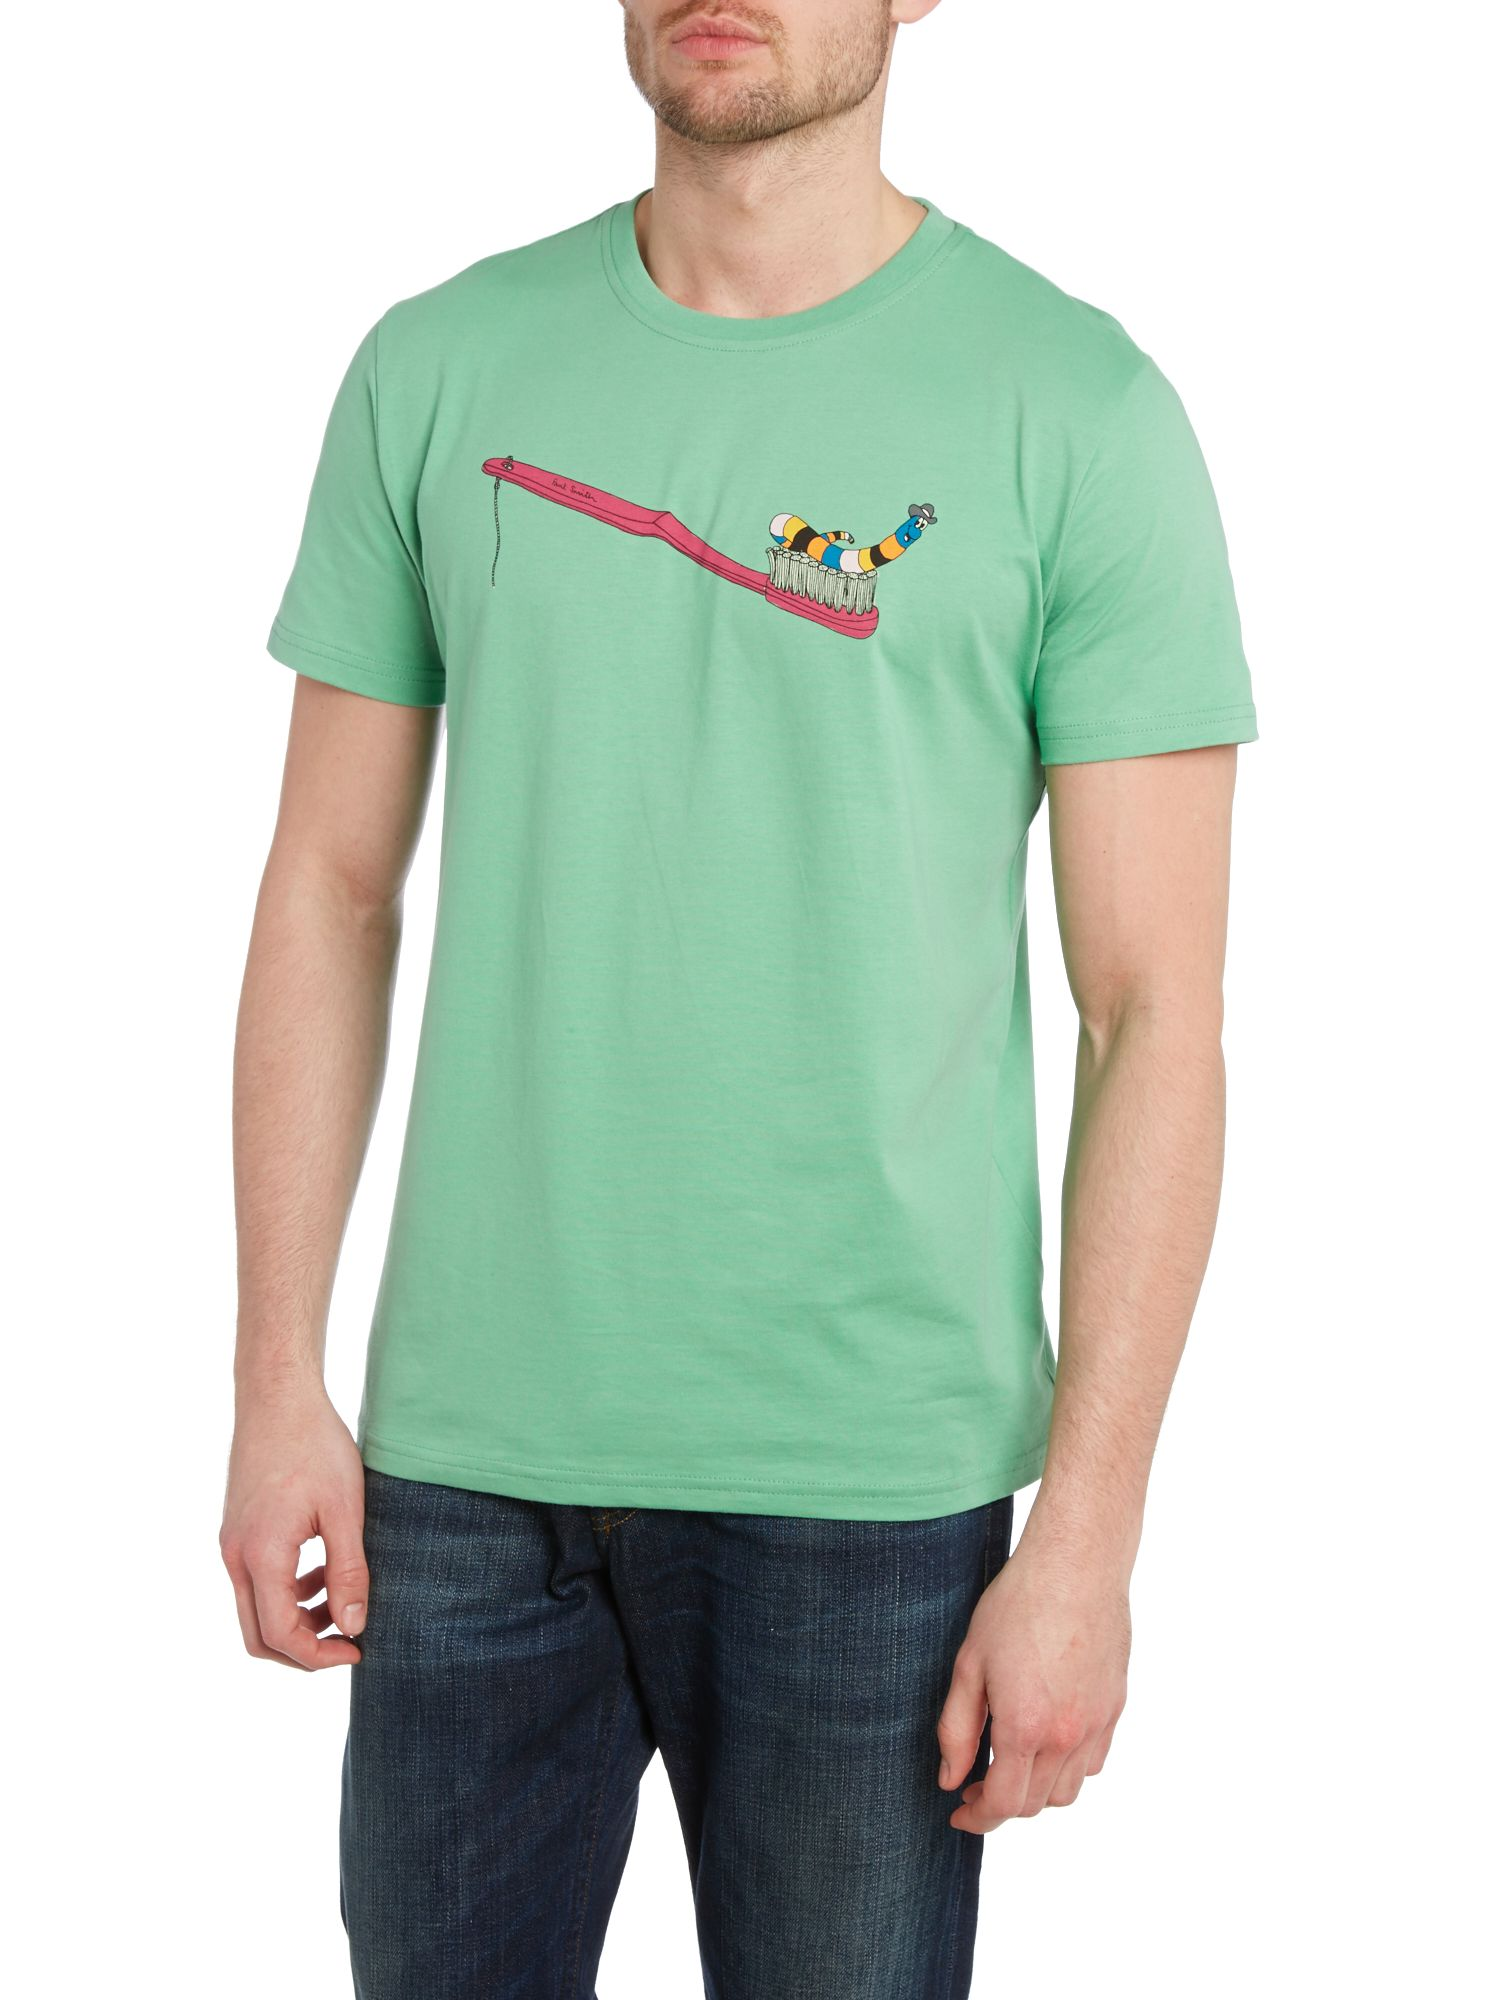 Toothbrush t shirt